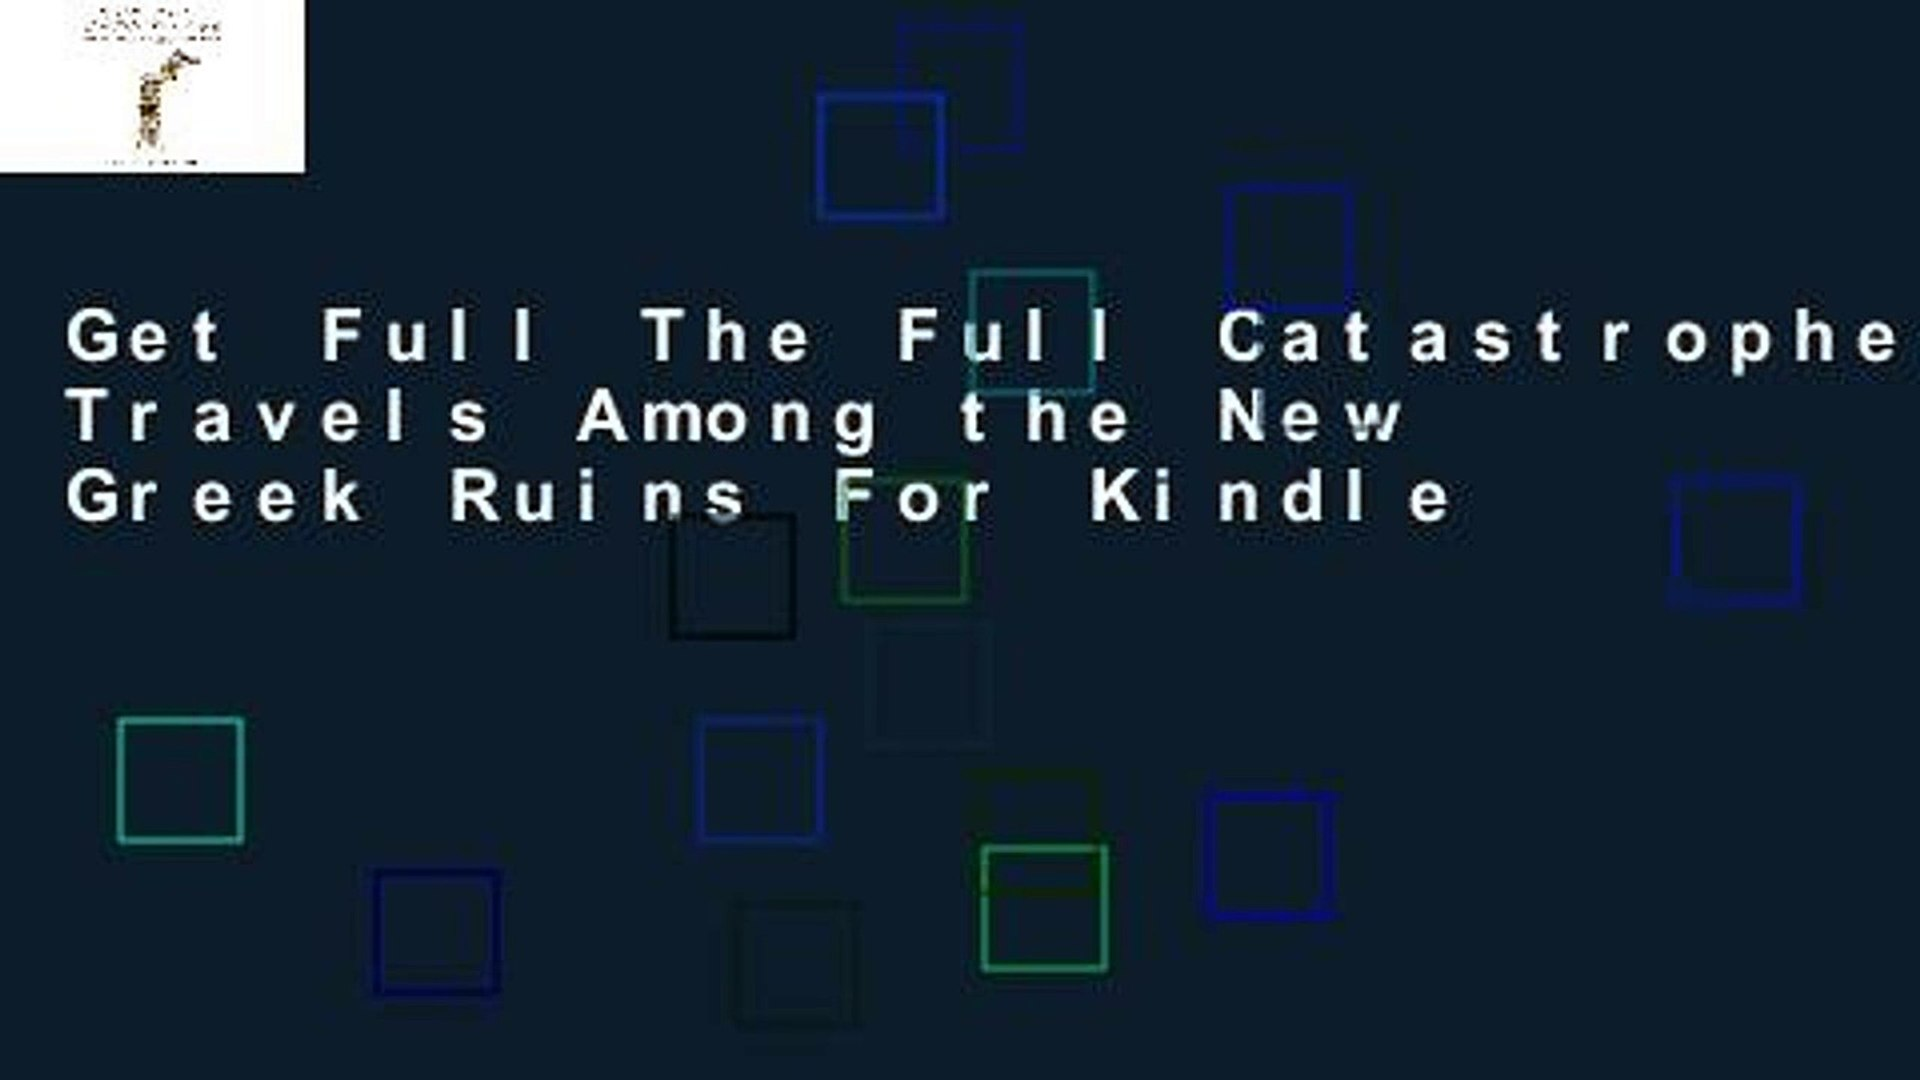 Get Full The Full Catastrophe: Travels Among the New Greek Ruins For Kindle